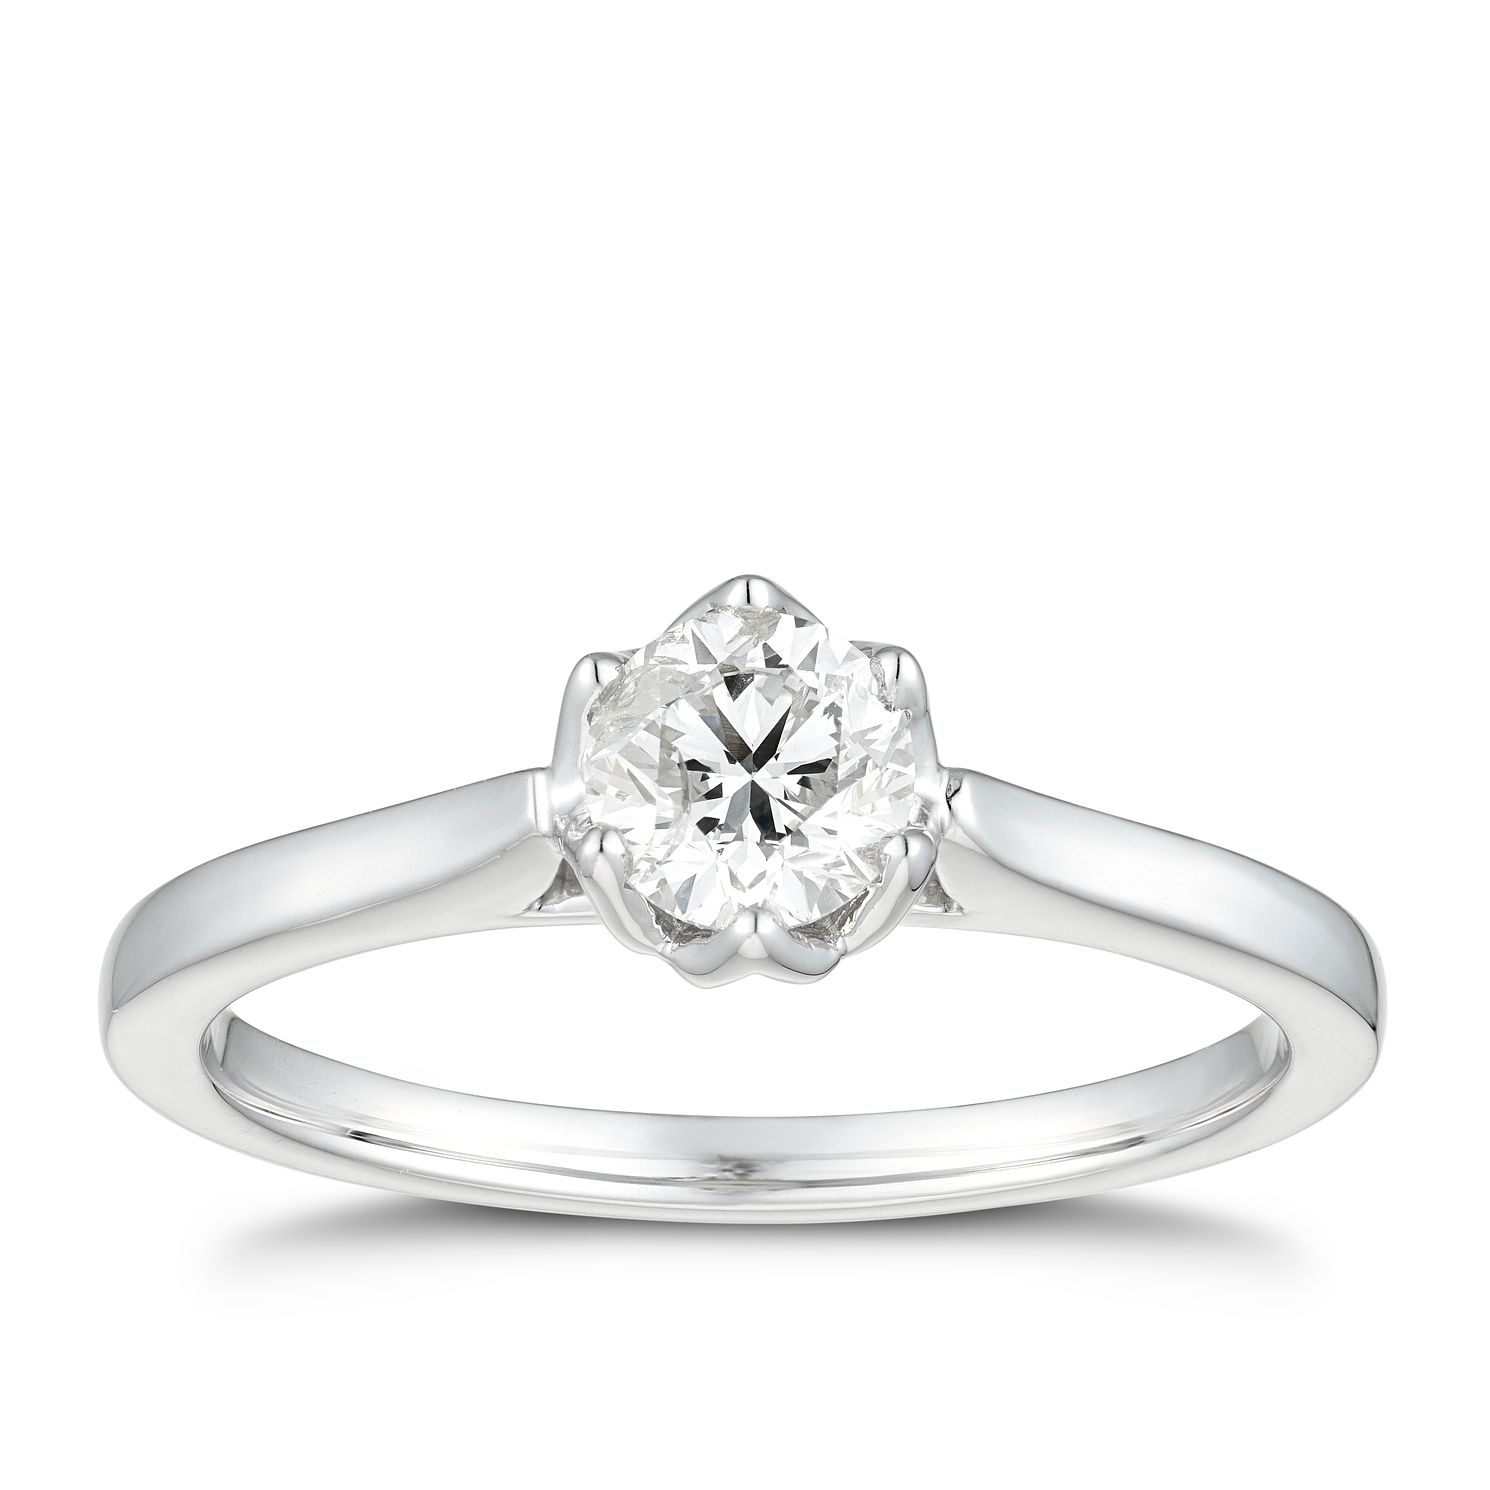 18ct White Gold 1/2ct Diamond Solitaire Flower Ring - Product number 5938171